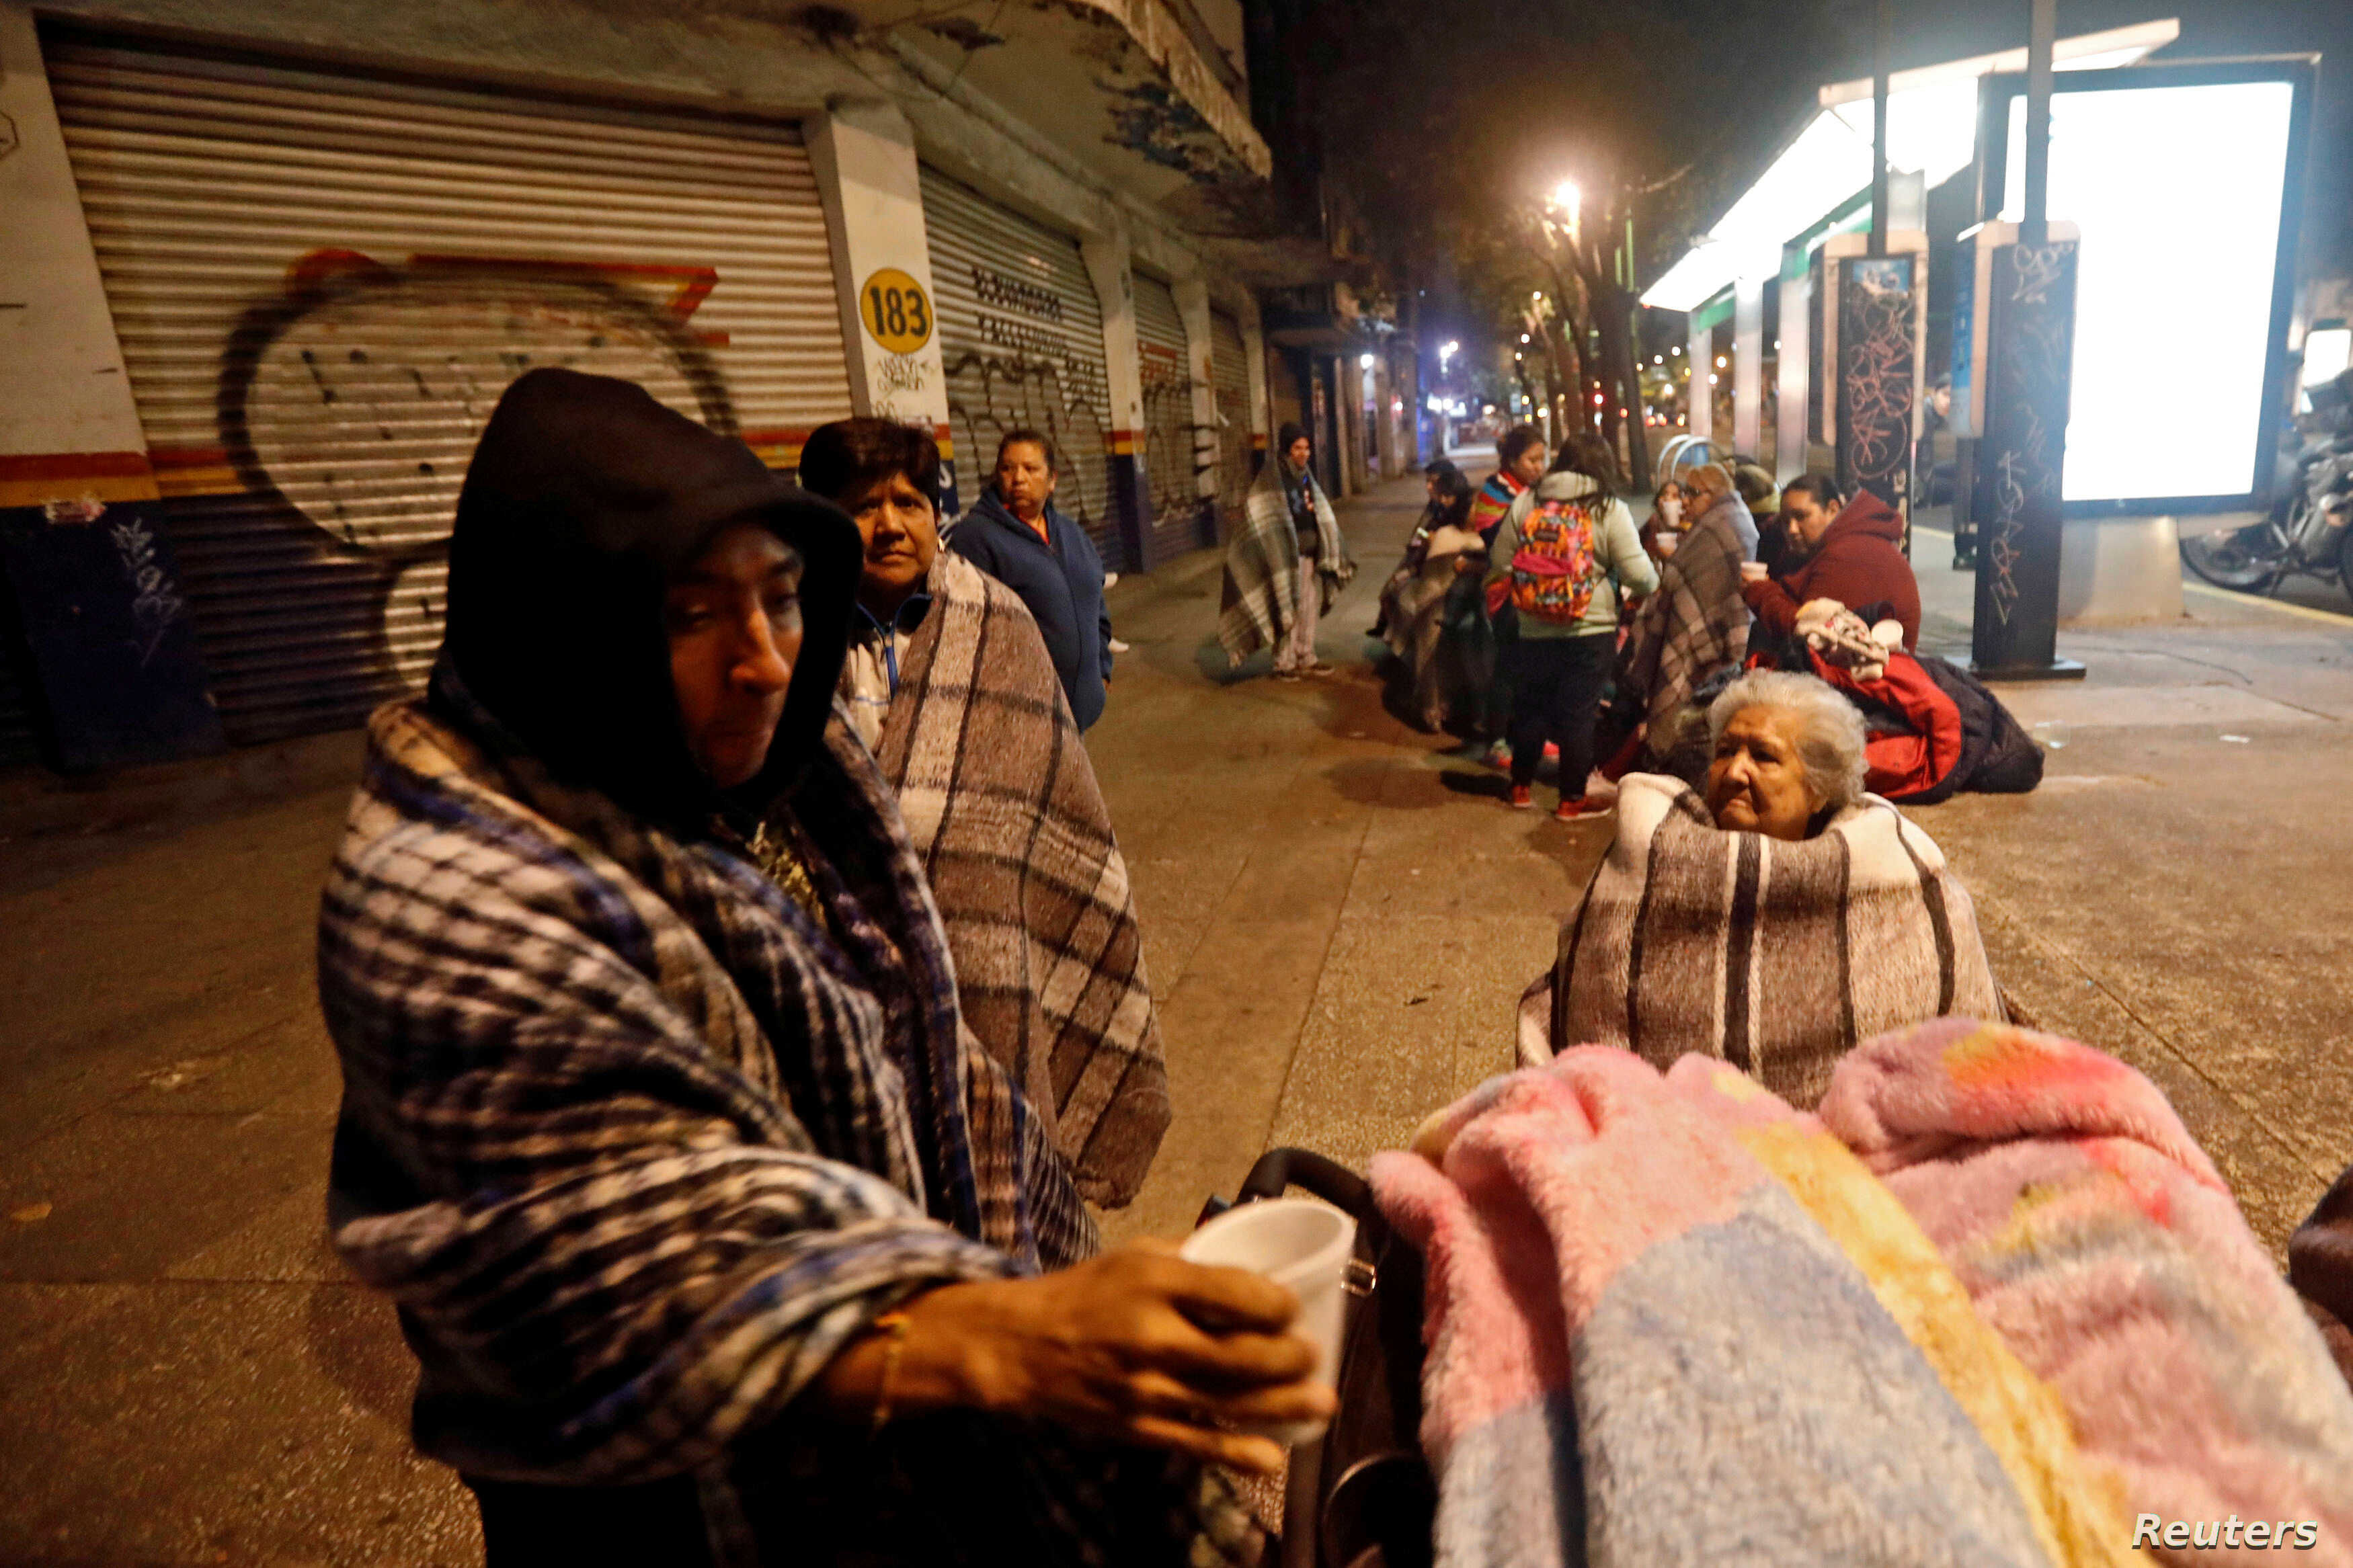 People gather on a street after an earthquake hit Mexico City, Mexico, Sept. 8, 2017.